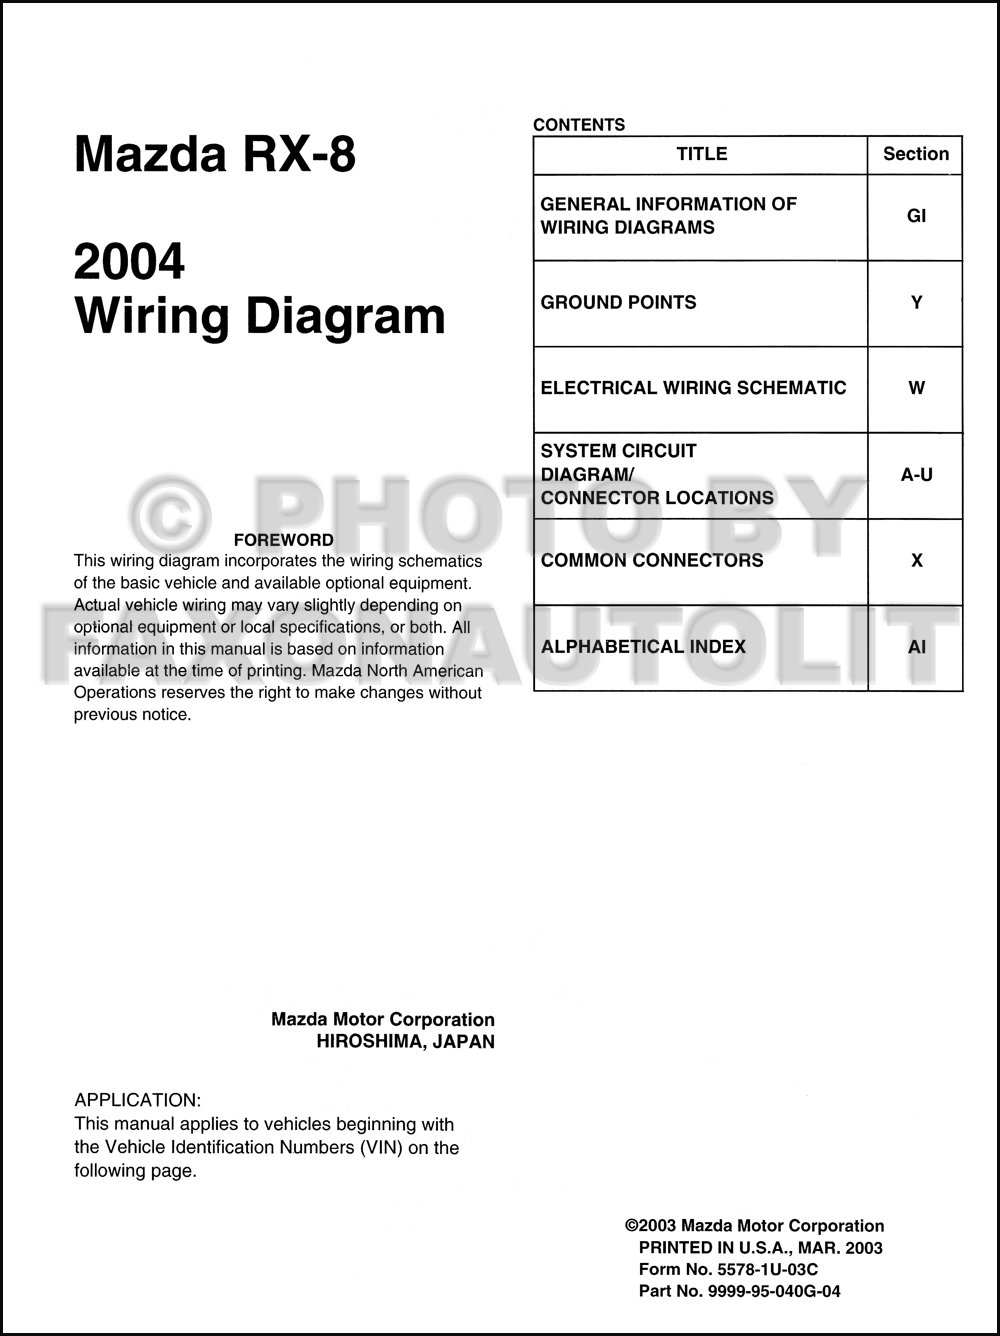 2004 mazda rx 8 wiring diagram manual original rx8. Black Bedroom Furniture Sets. Home Design Ideas